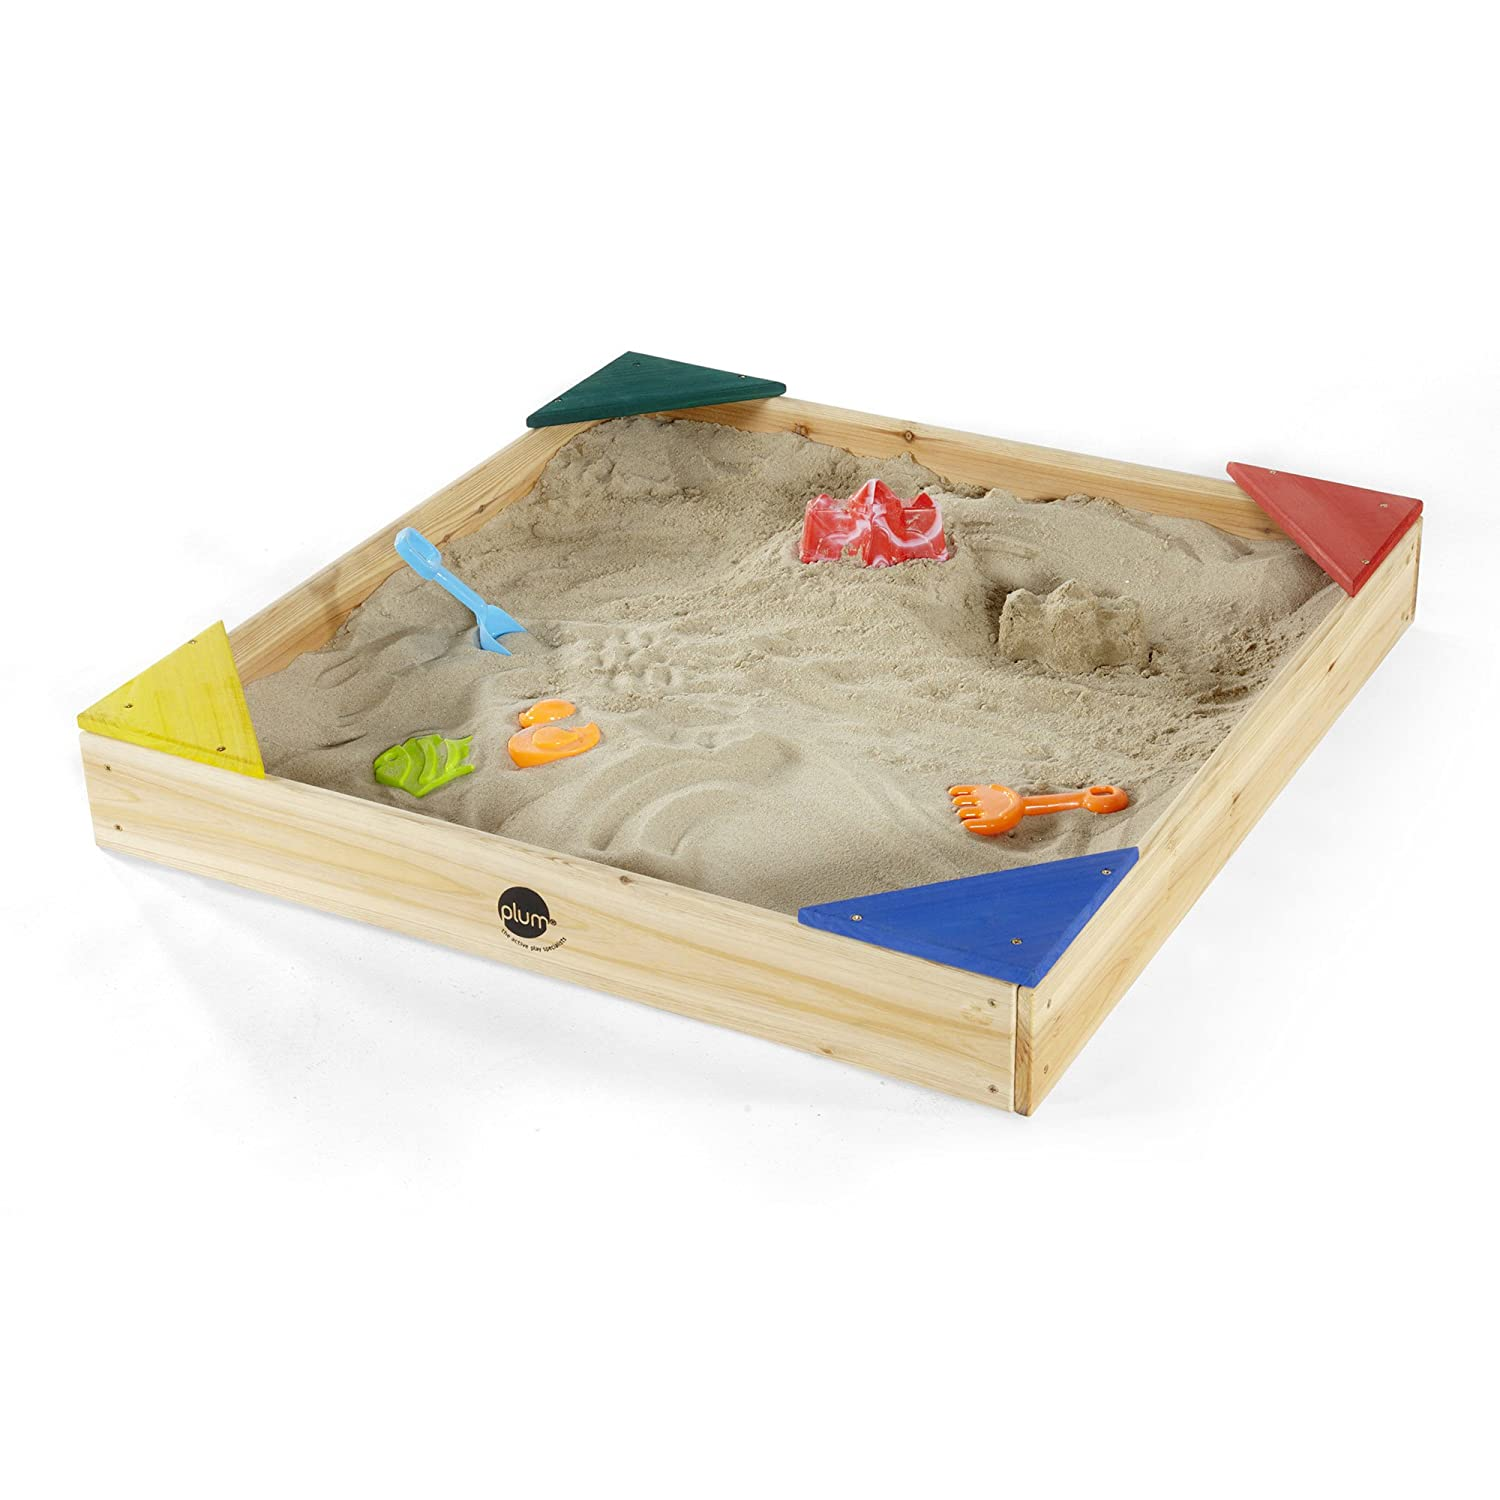 Plum Sand Box (Junior)